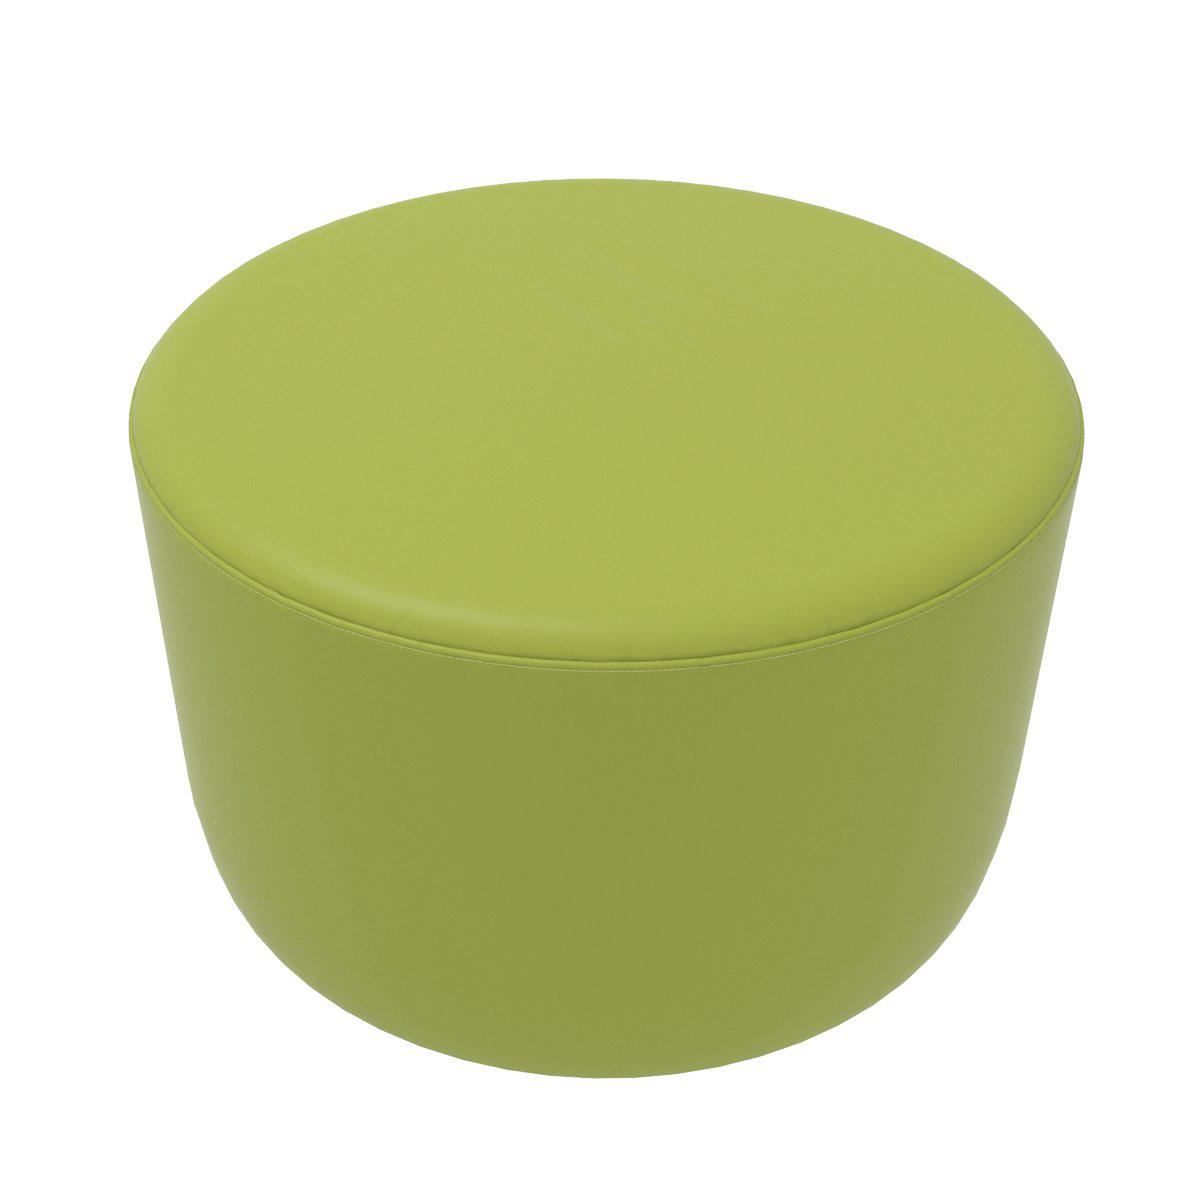 "Fomcore Ottoman Series 30"" Round Ottoman with 100% ALL-FOAM CORE, Antibacterial Vinyl Upholstery, LIFETIME WARRANTY"